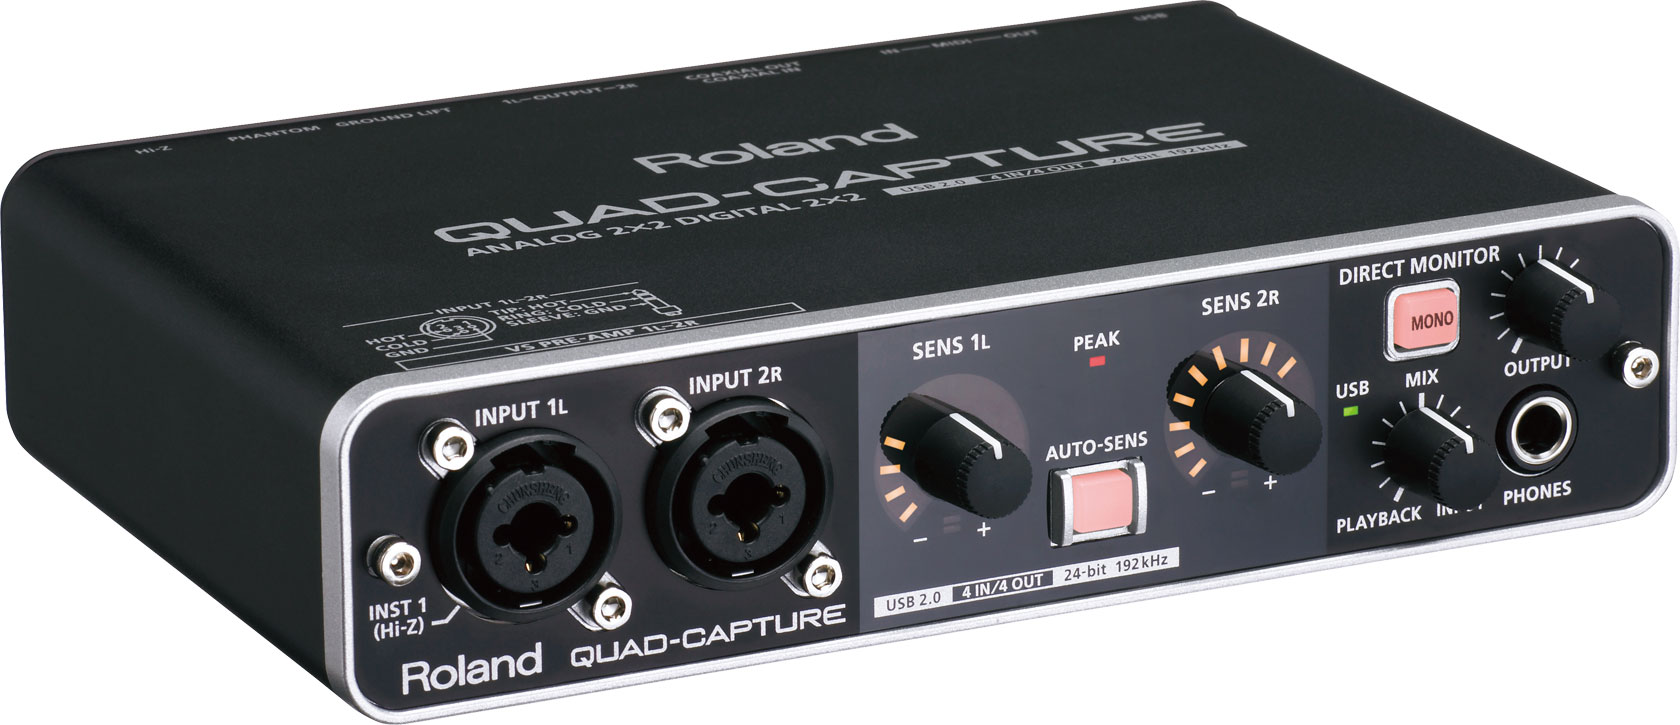 Roland Quad-Capture USB audio interface